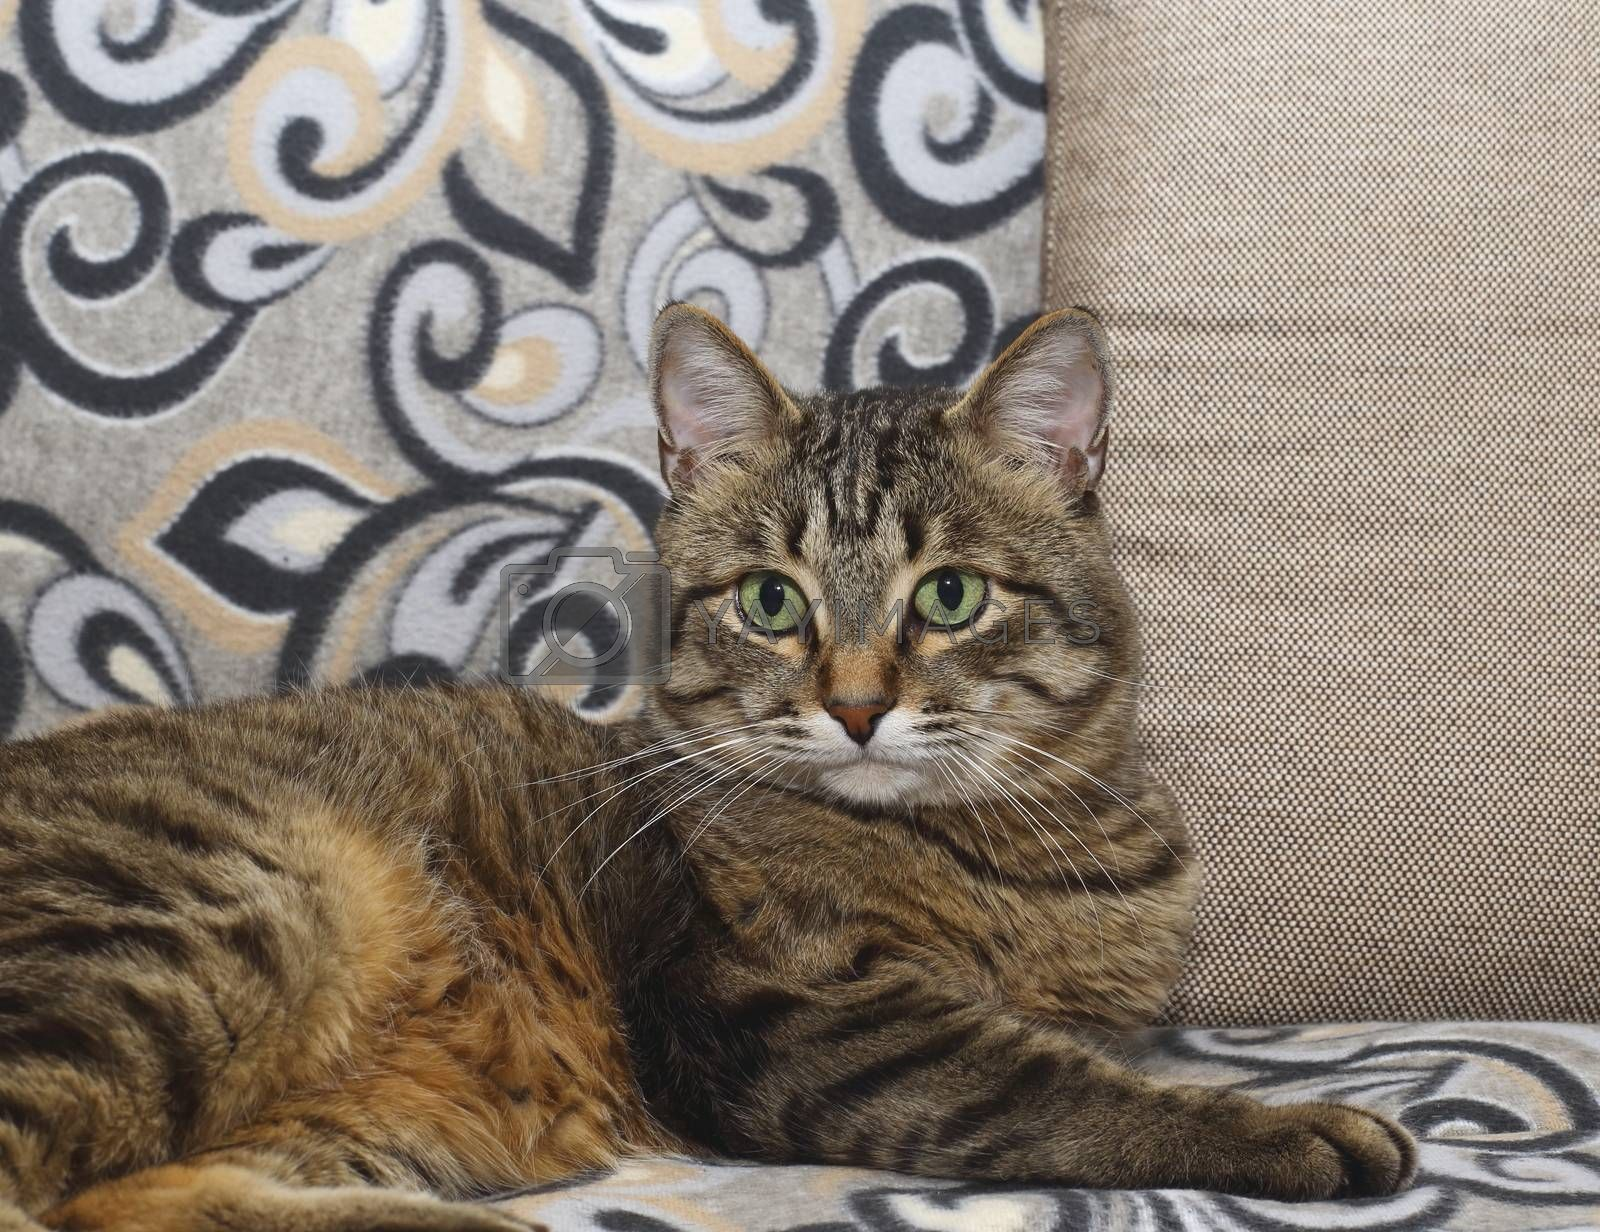 Handsome cat. Fluffy and striped is on the couch in a relaxed pose.